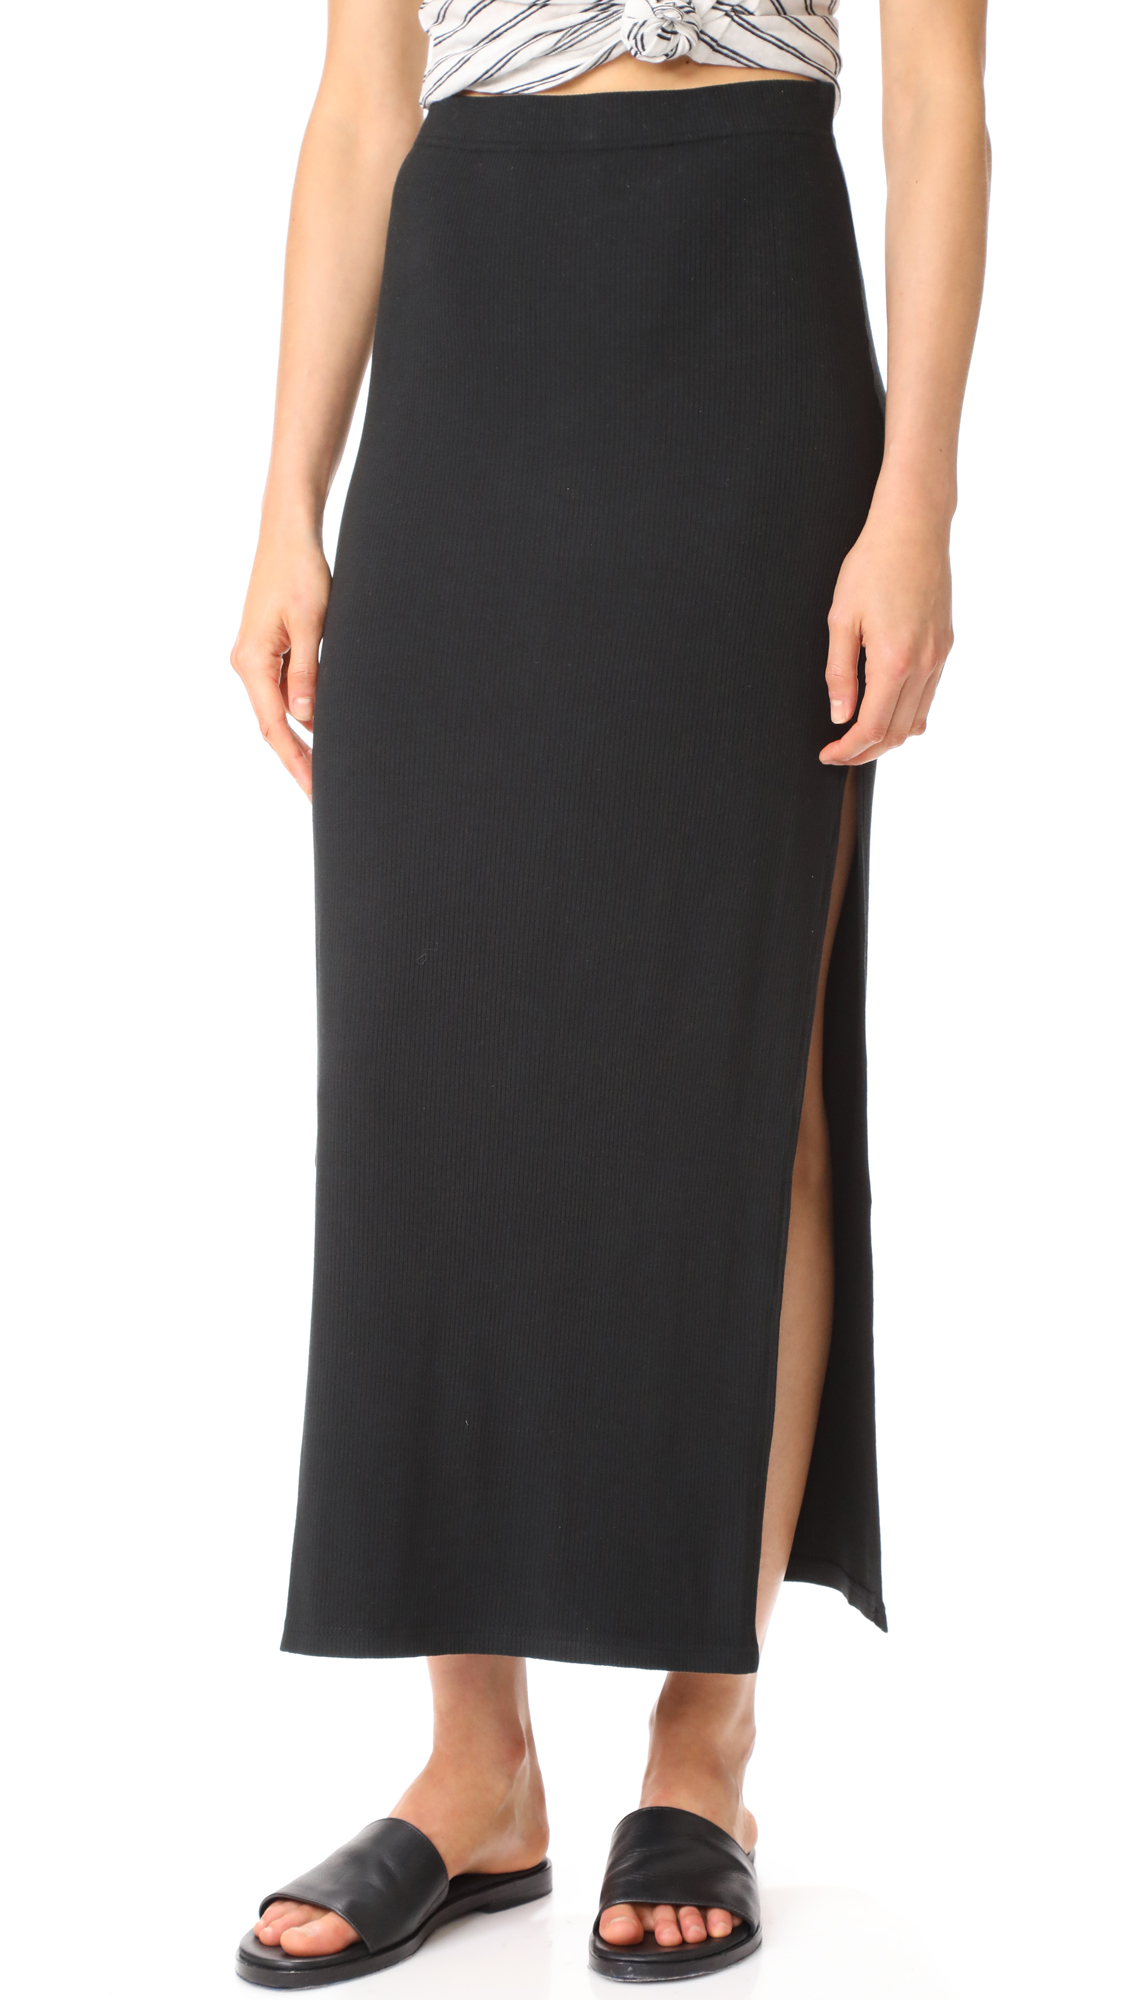 BB Dakota Jack by BB Dakota Mattison High Slit Skirt - Black